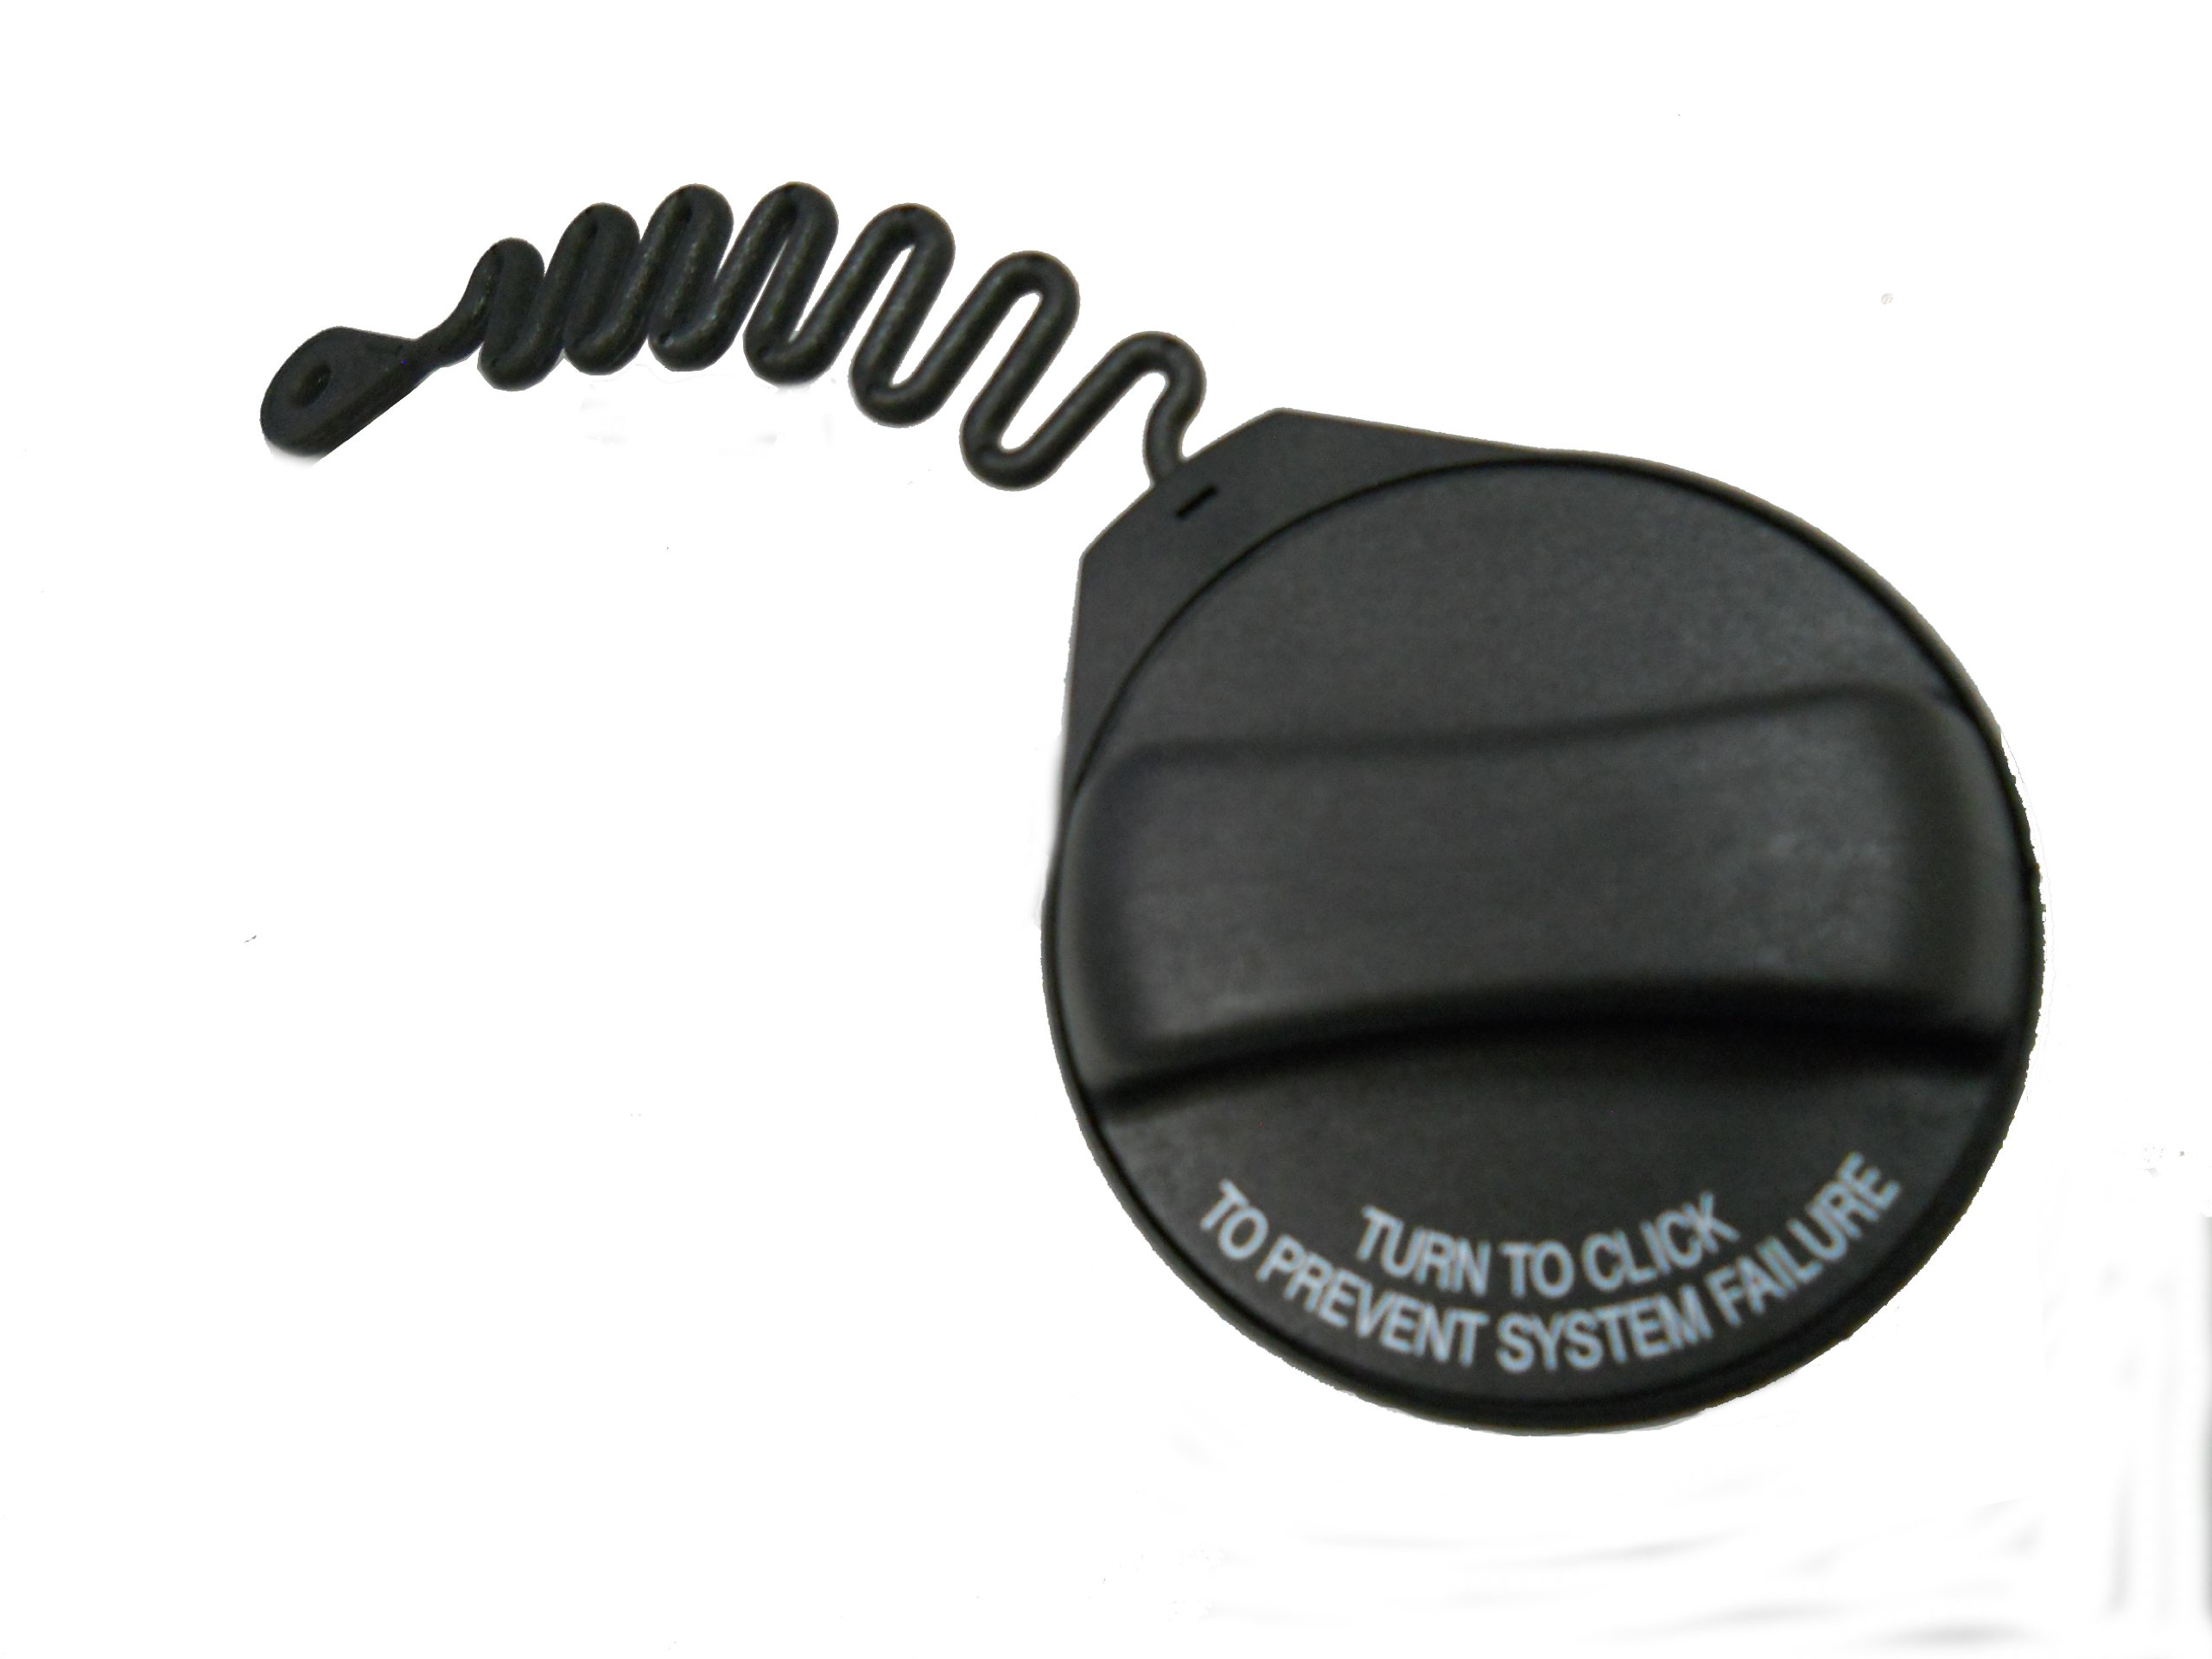 Genuine Volvo Gas Filler Cap V70 S60 XC90 XC70 XC60 See Description NEW OEM p/n 31392044 by Volvo